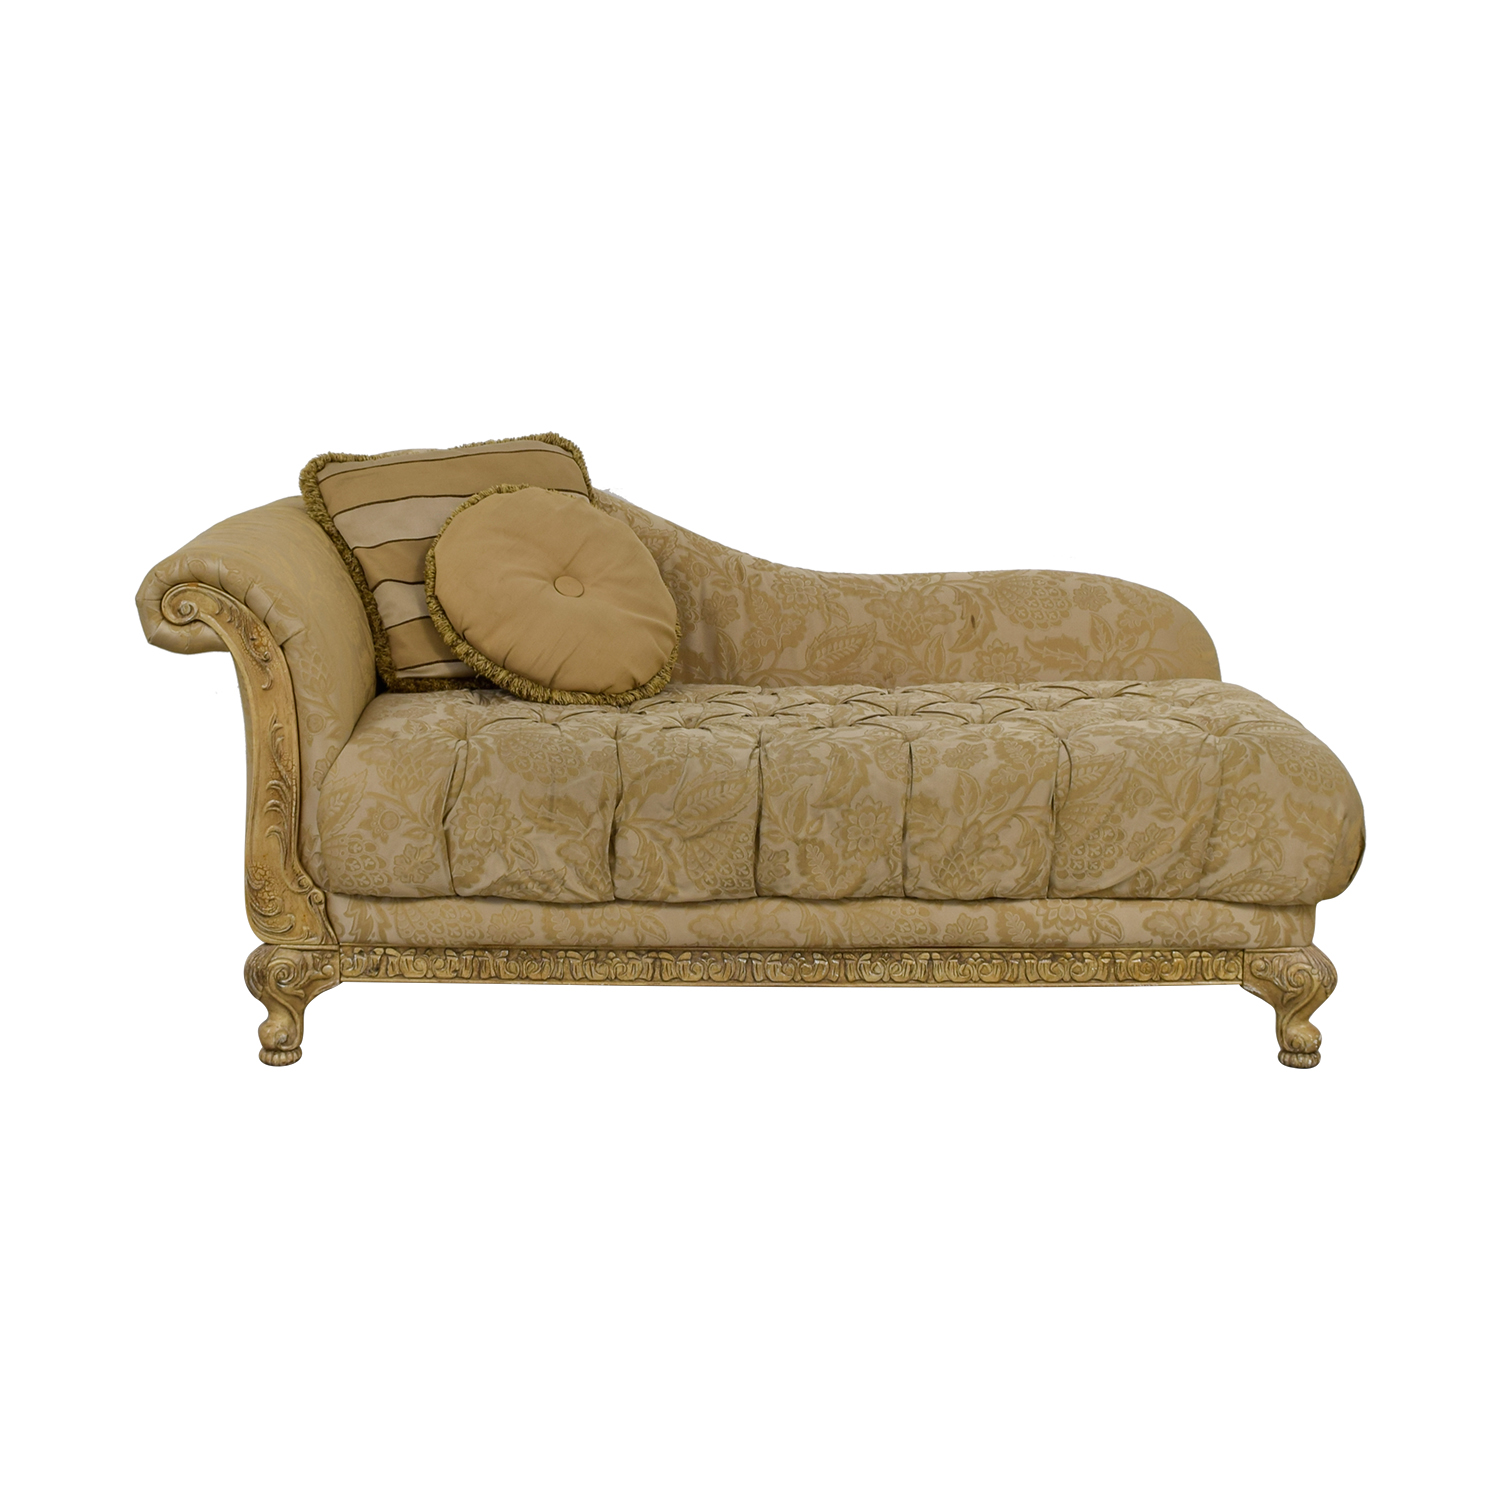 90% OFF - Schnadig Schnadig Beige Jacquard Tufted Chaise Lounge / Sofas